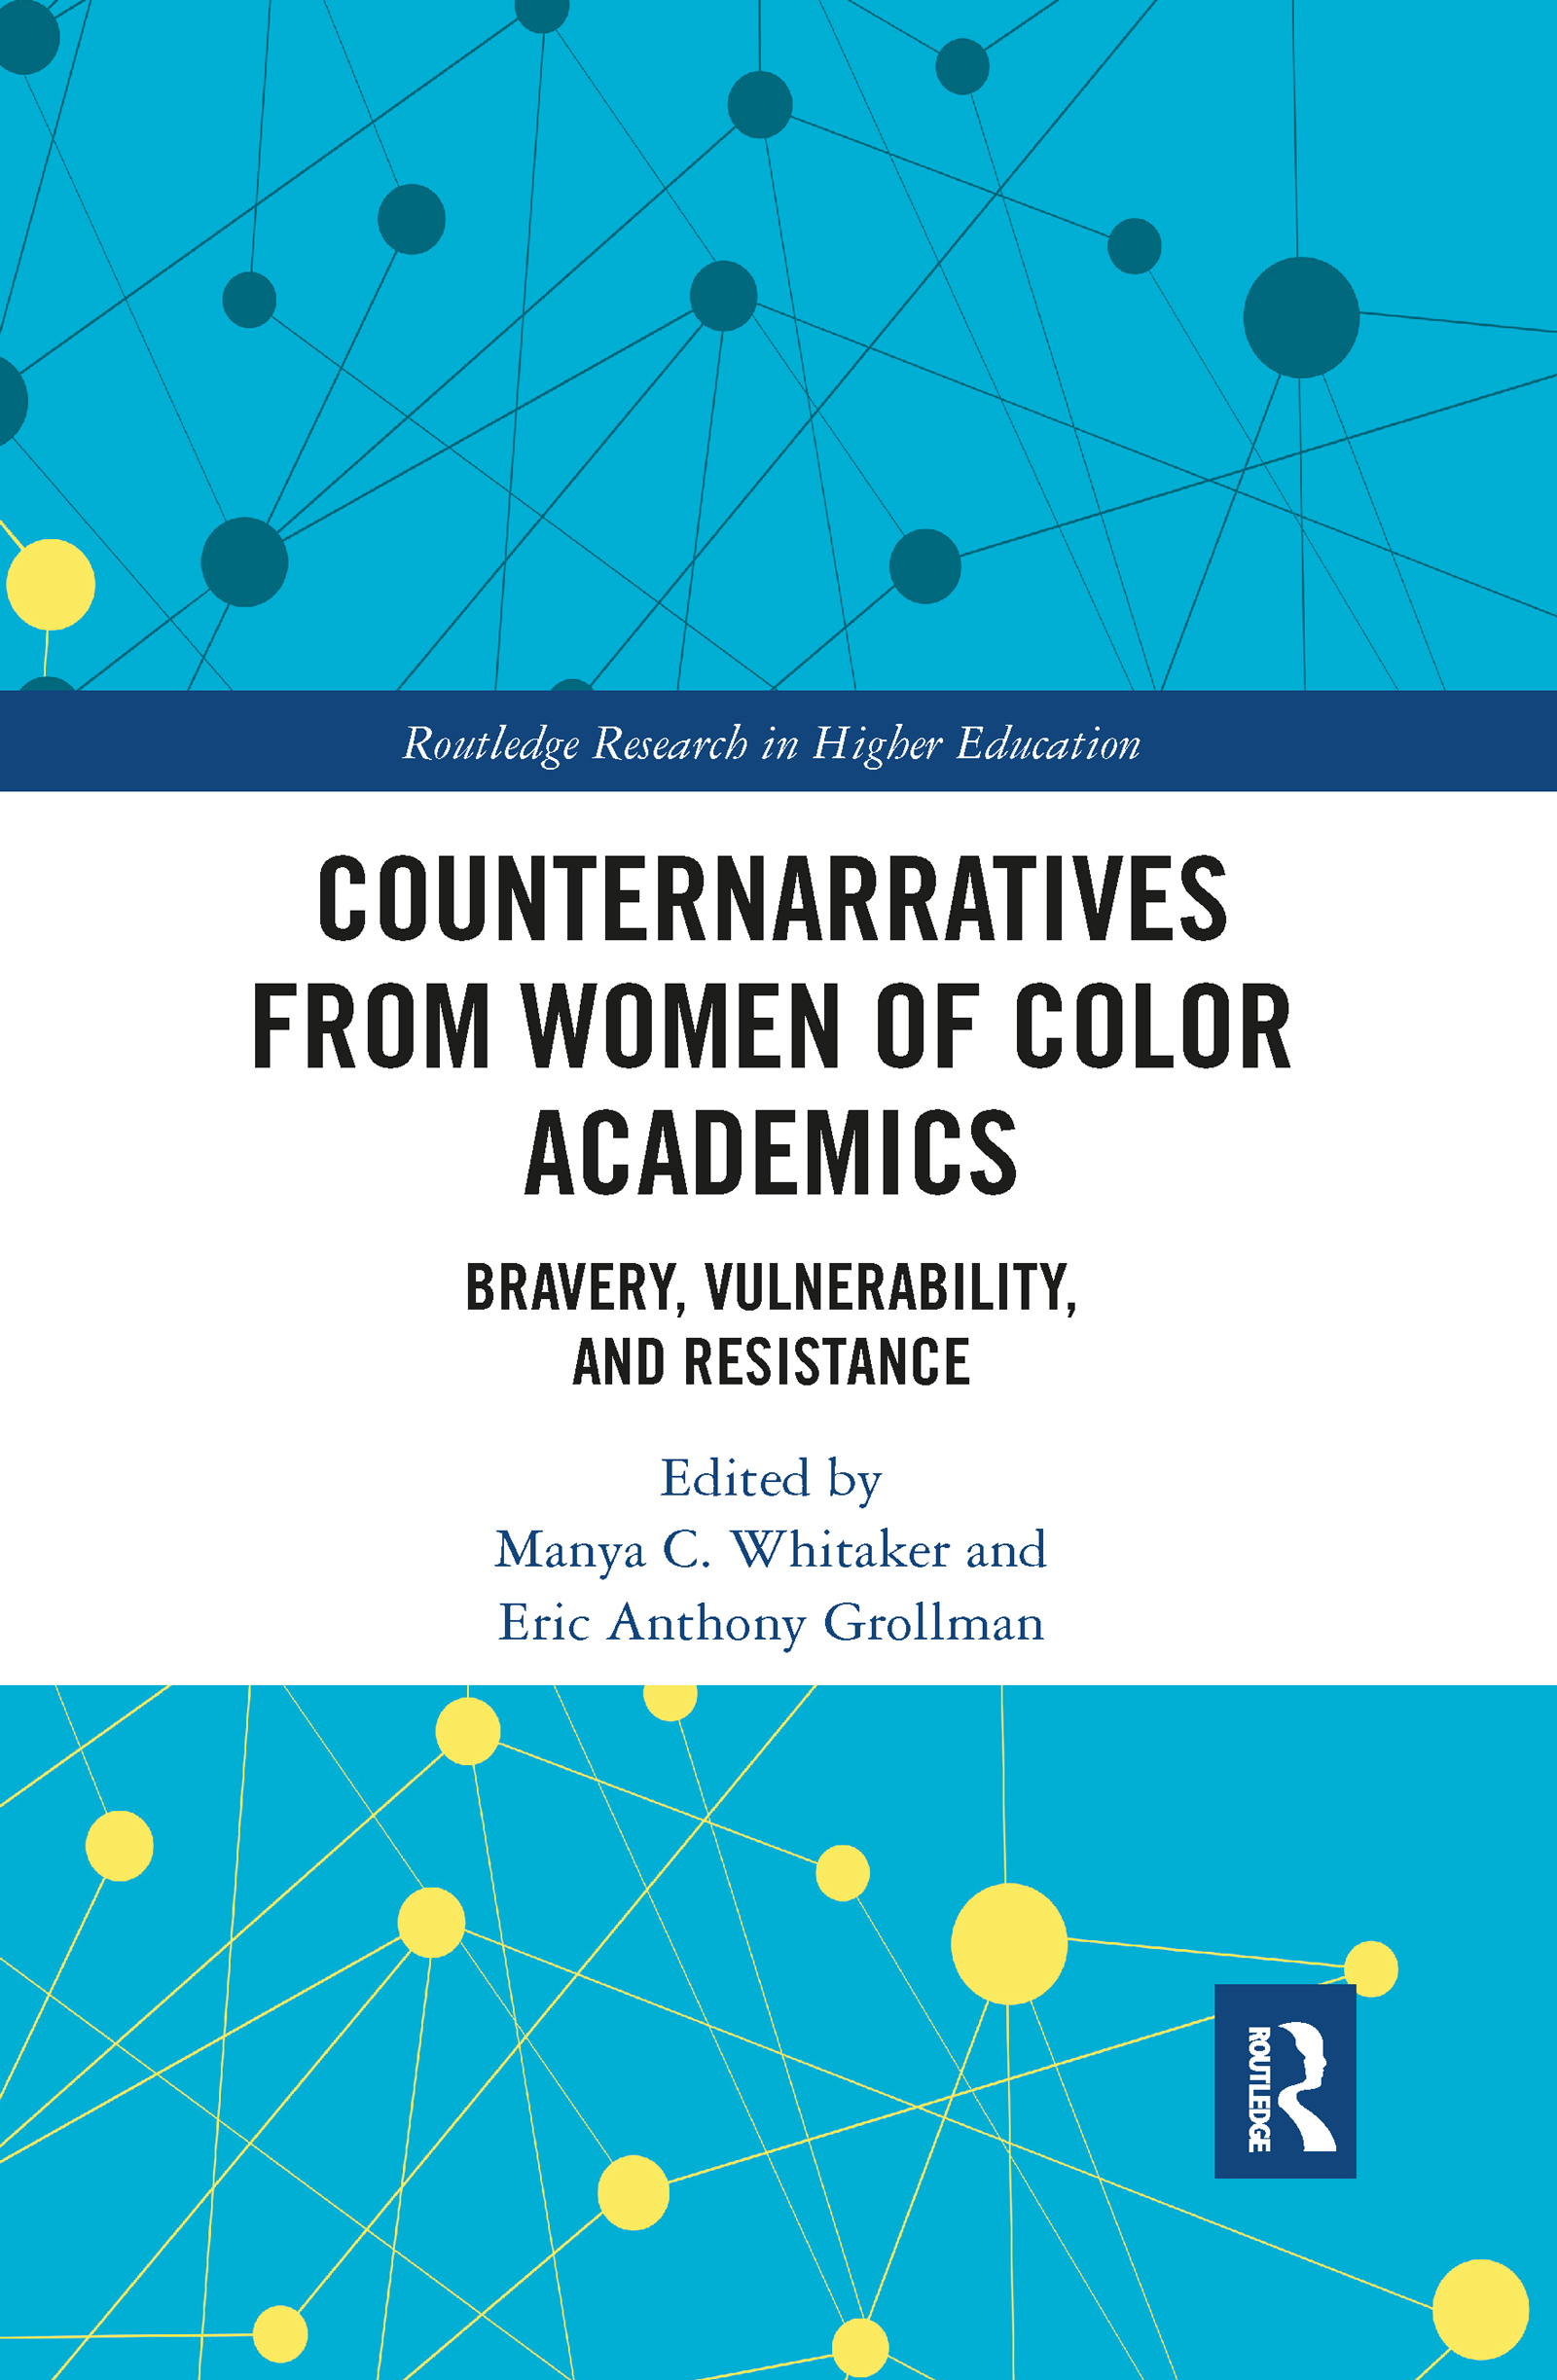 Counternarratives from Women of Color Academics